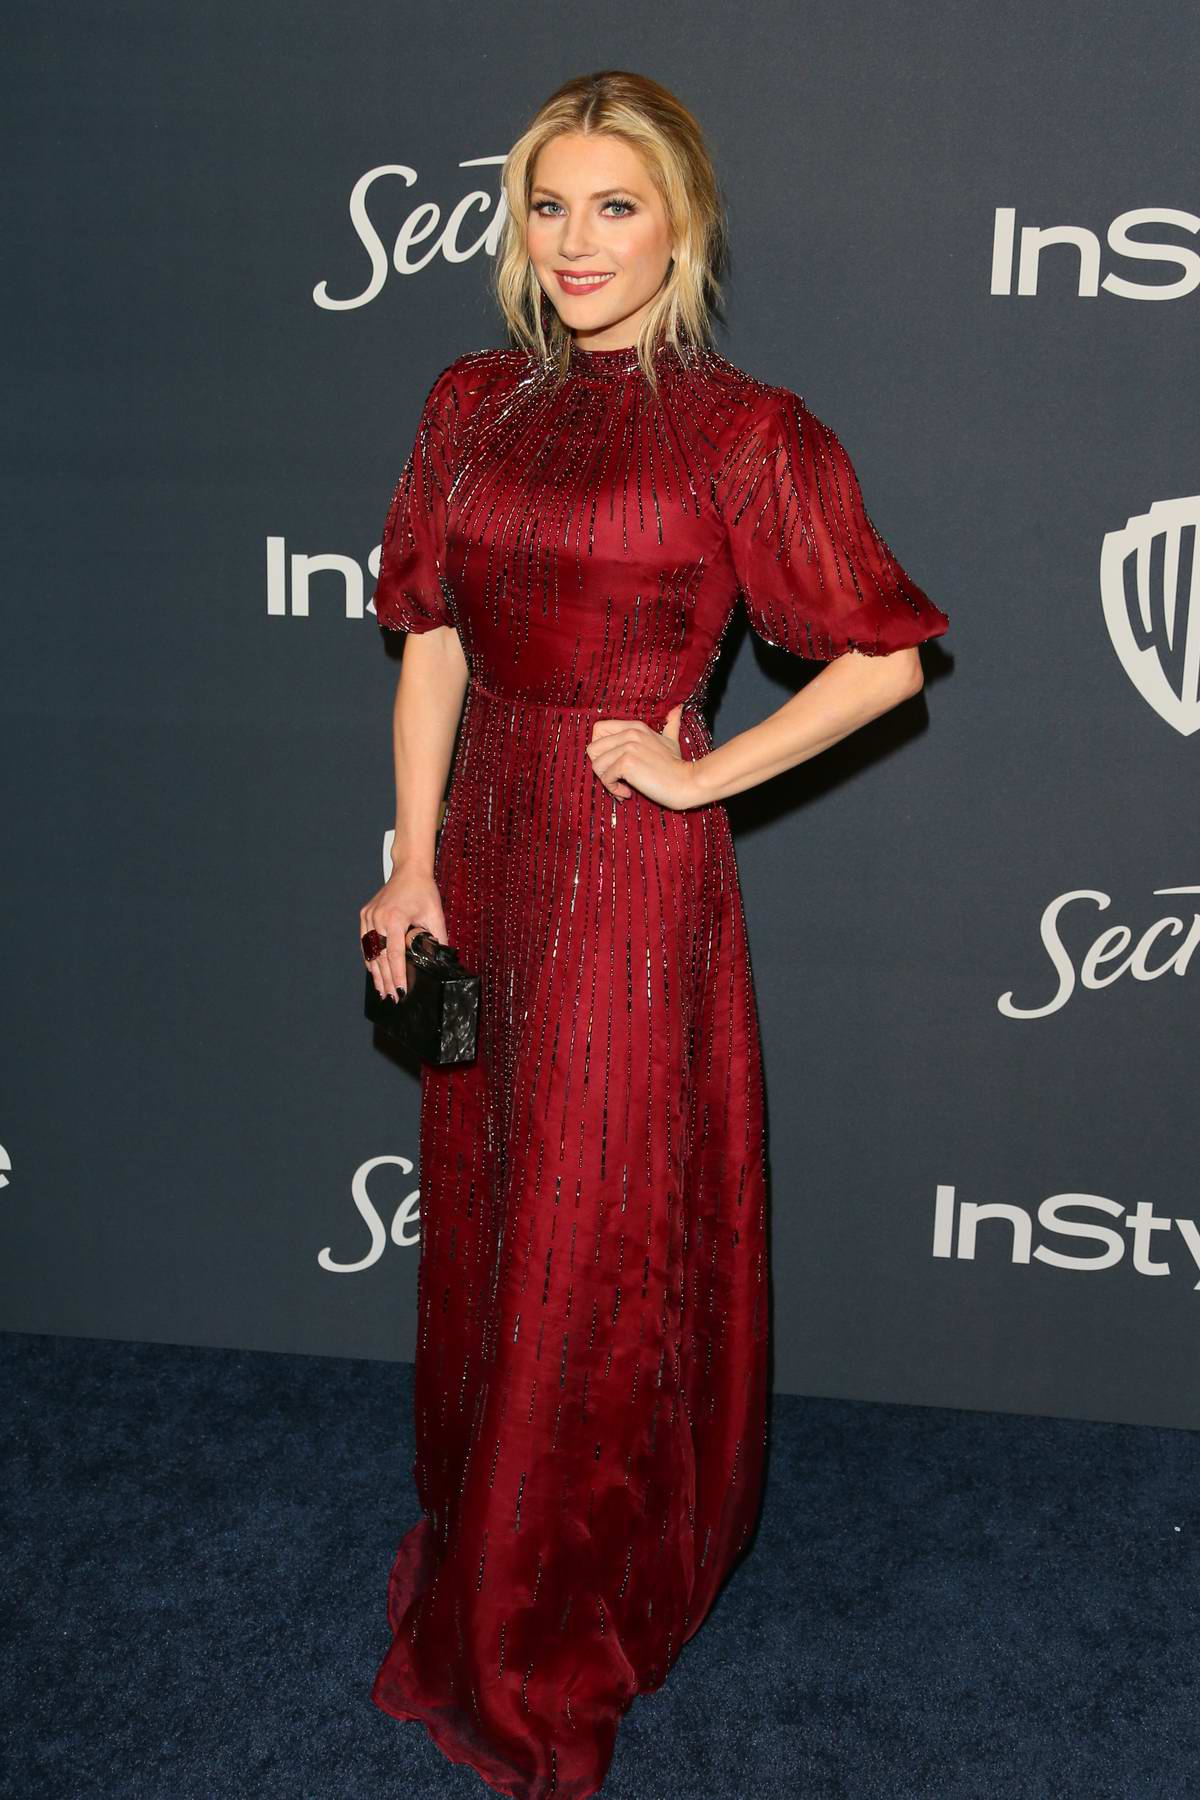 Katheryn Winnick attends the 21st annual Warner Bros and InStyle Golden Globe After-Party in Beverly Hills, California